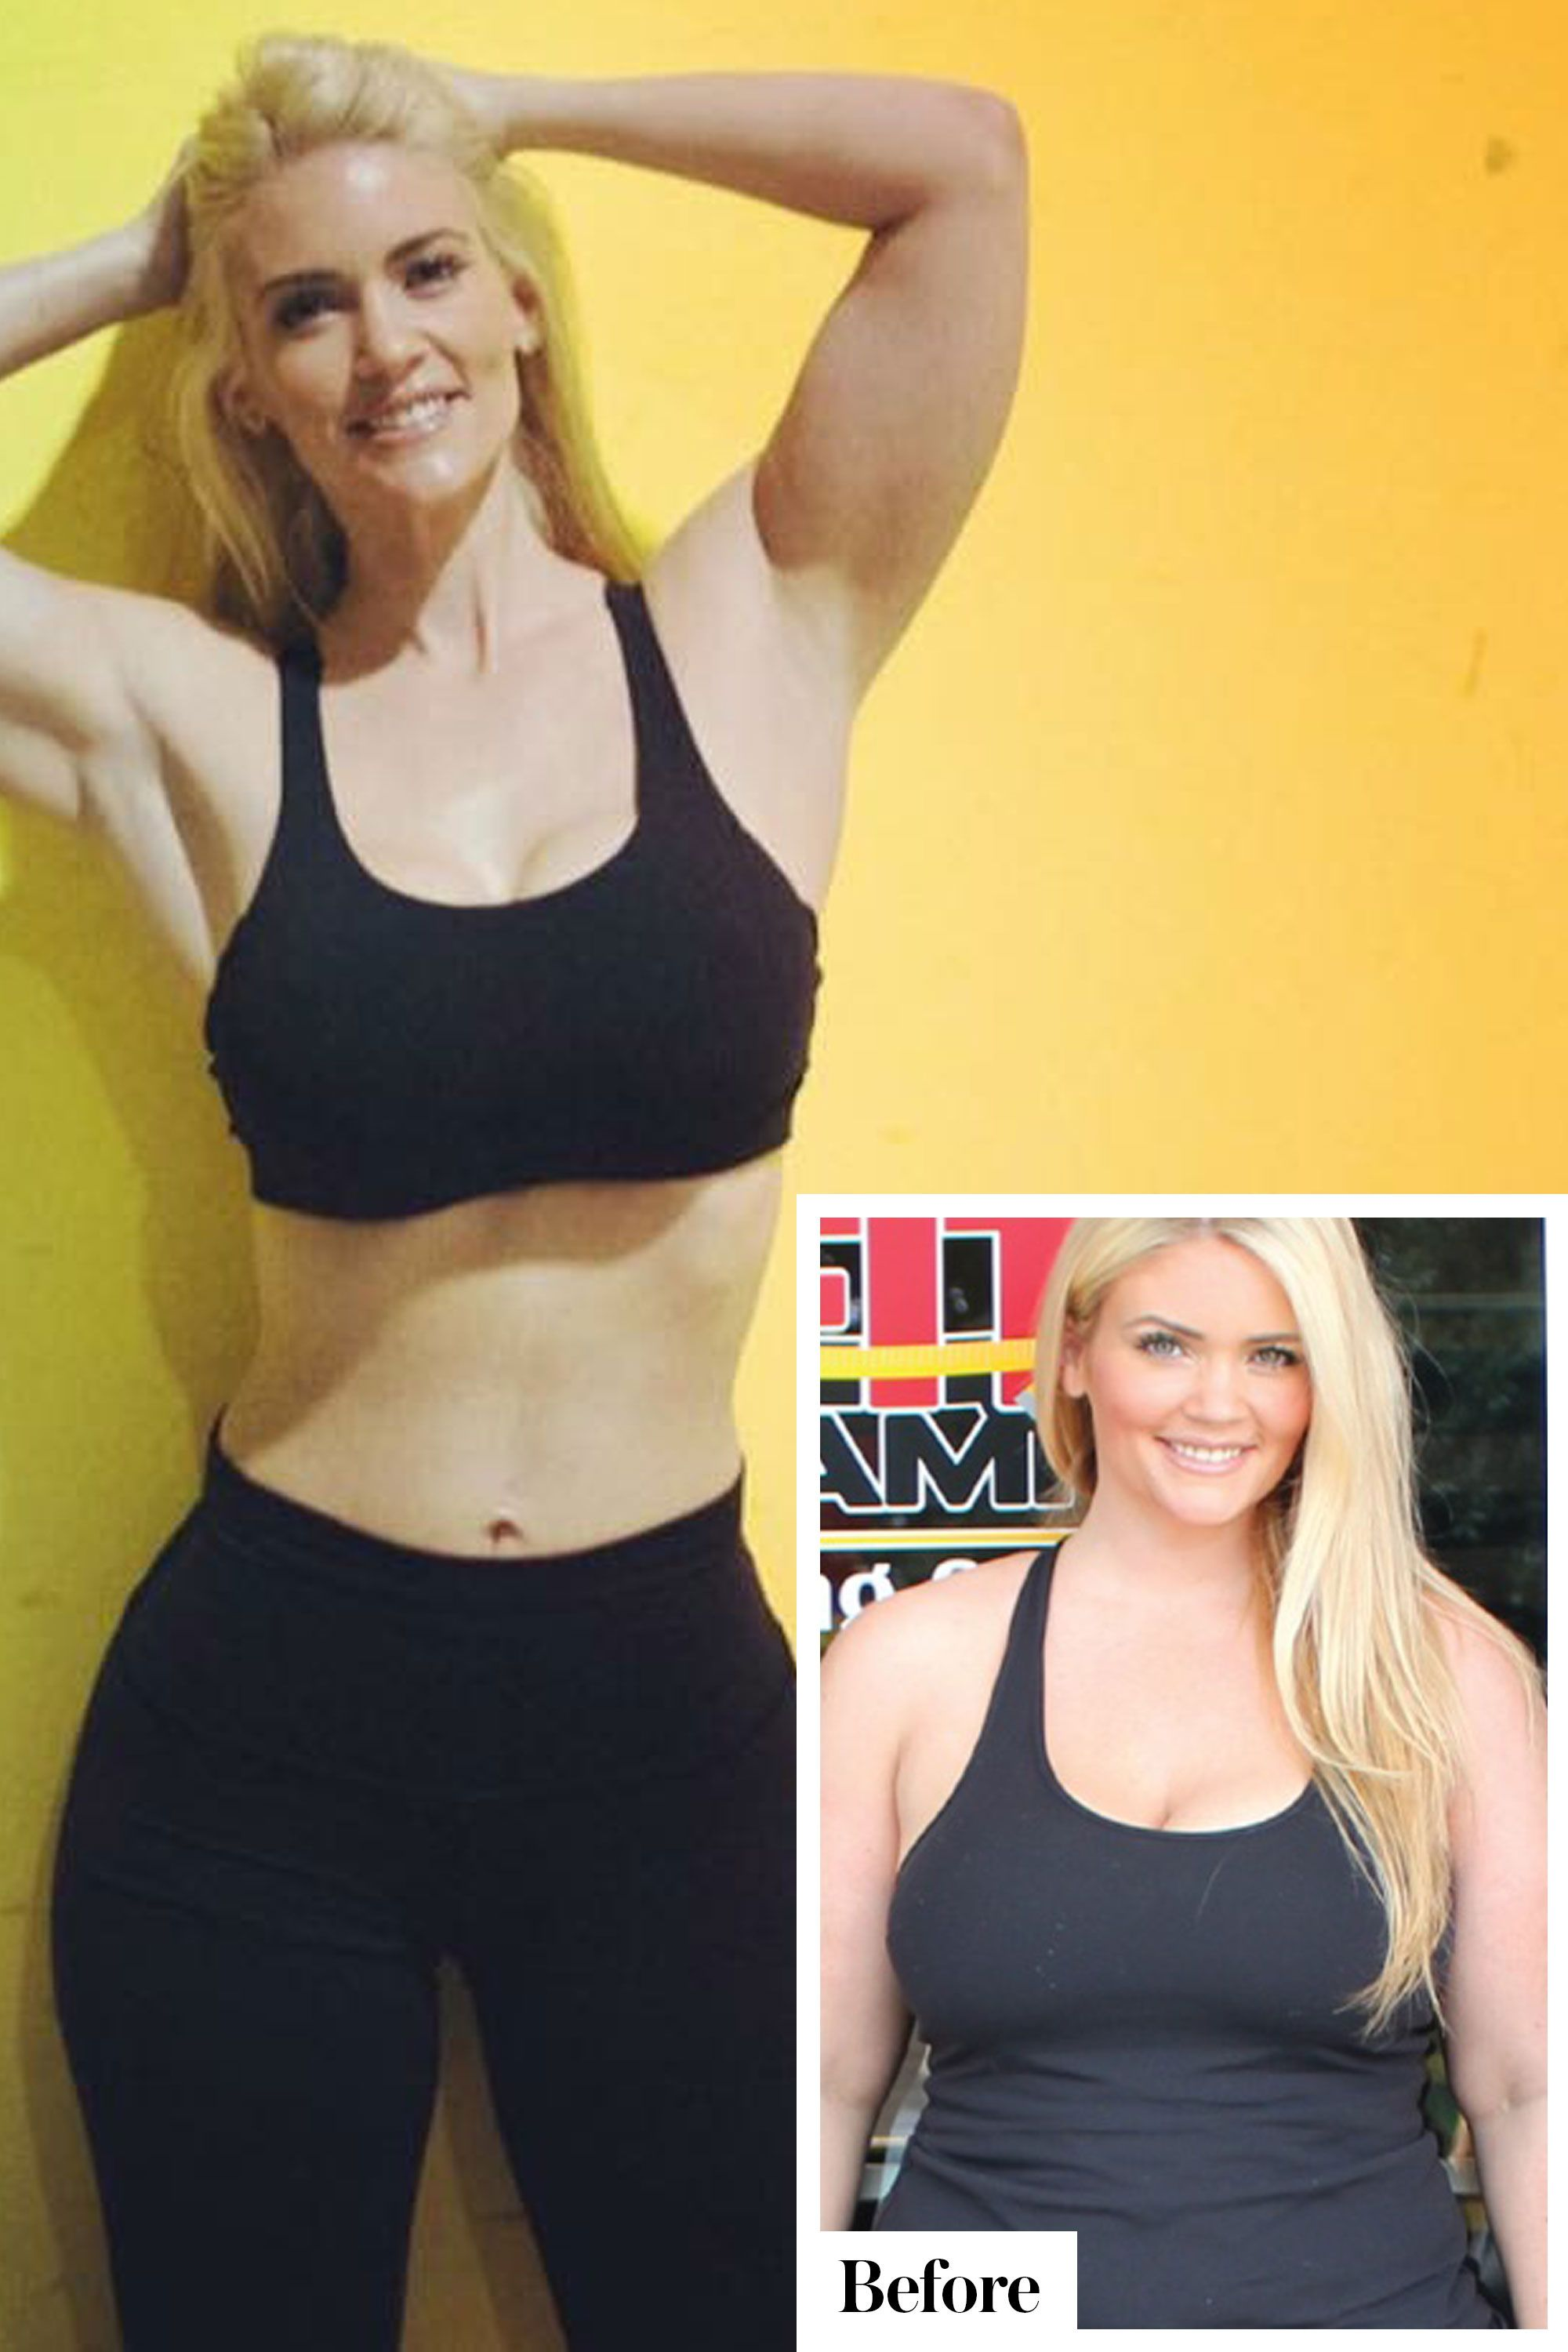 15 Stories of Women Who Lost Weight Without Fad Dieting